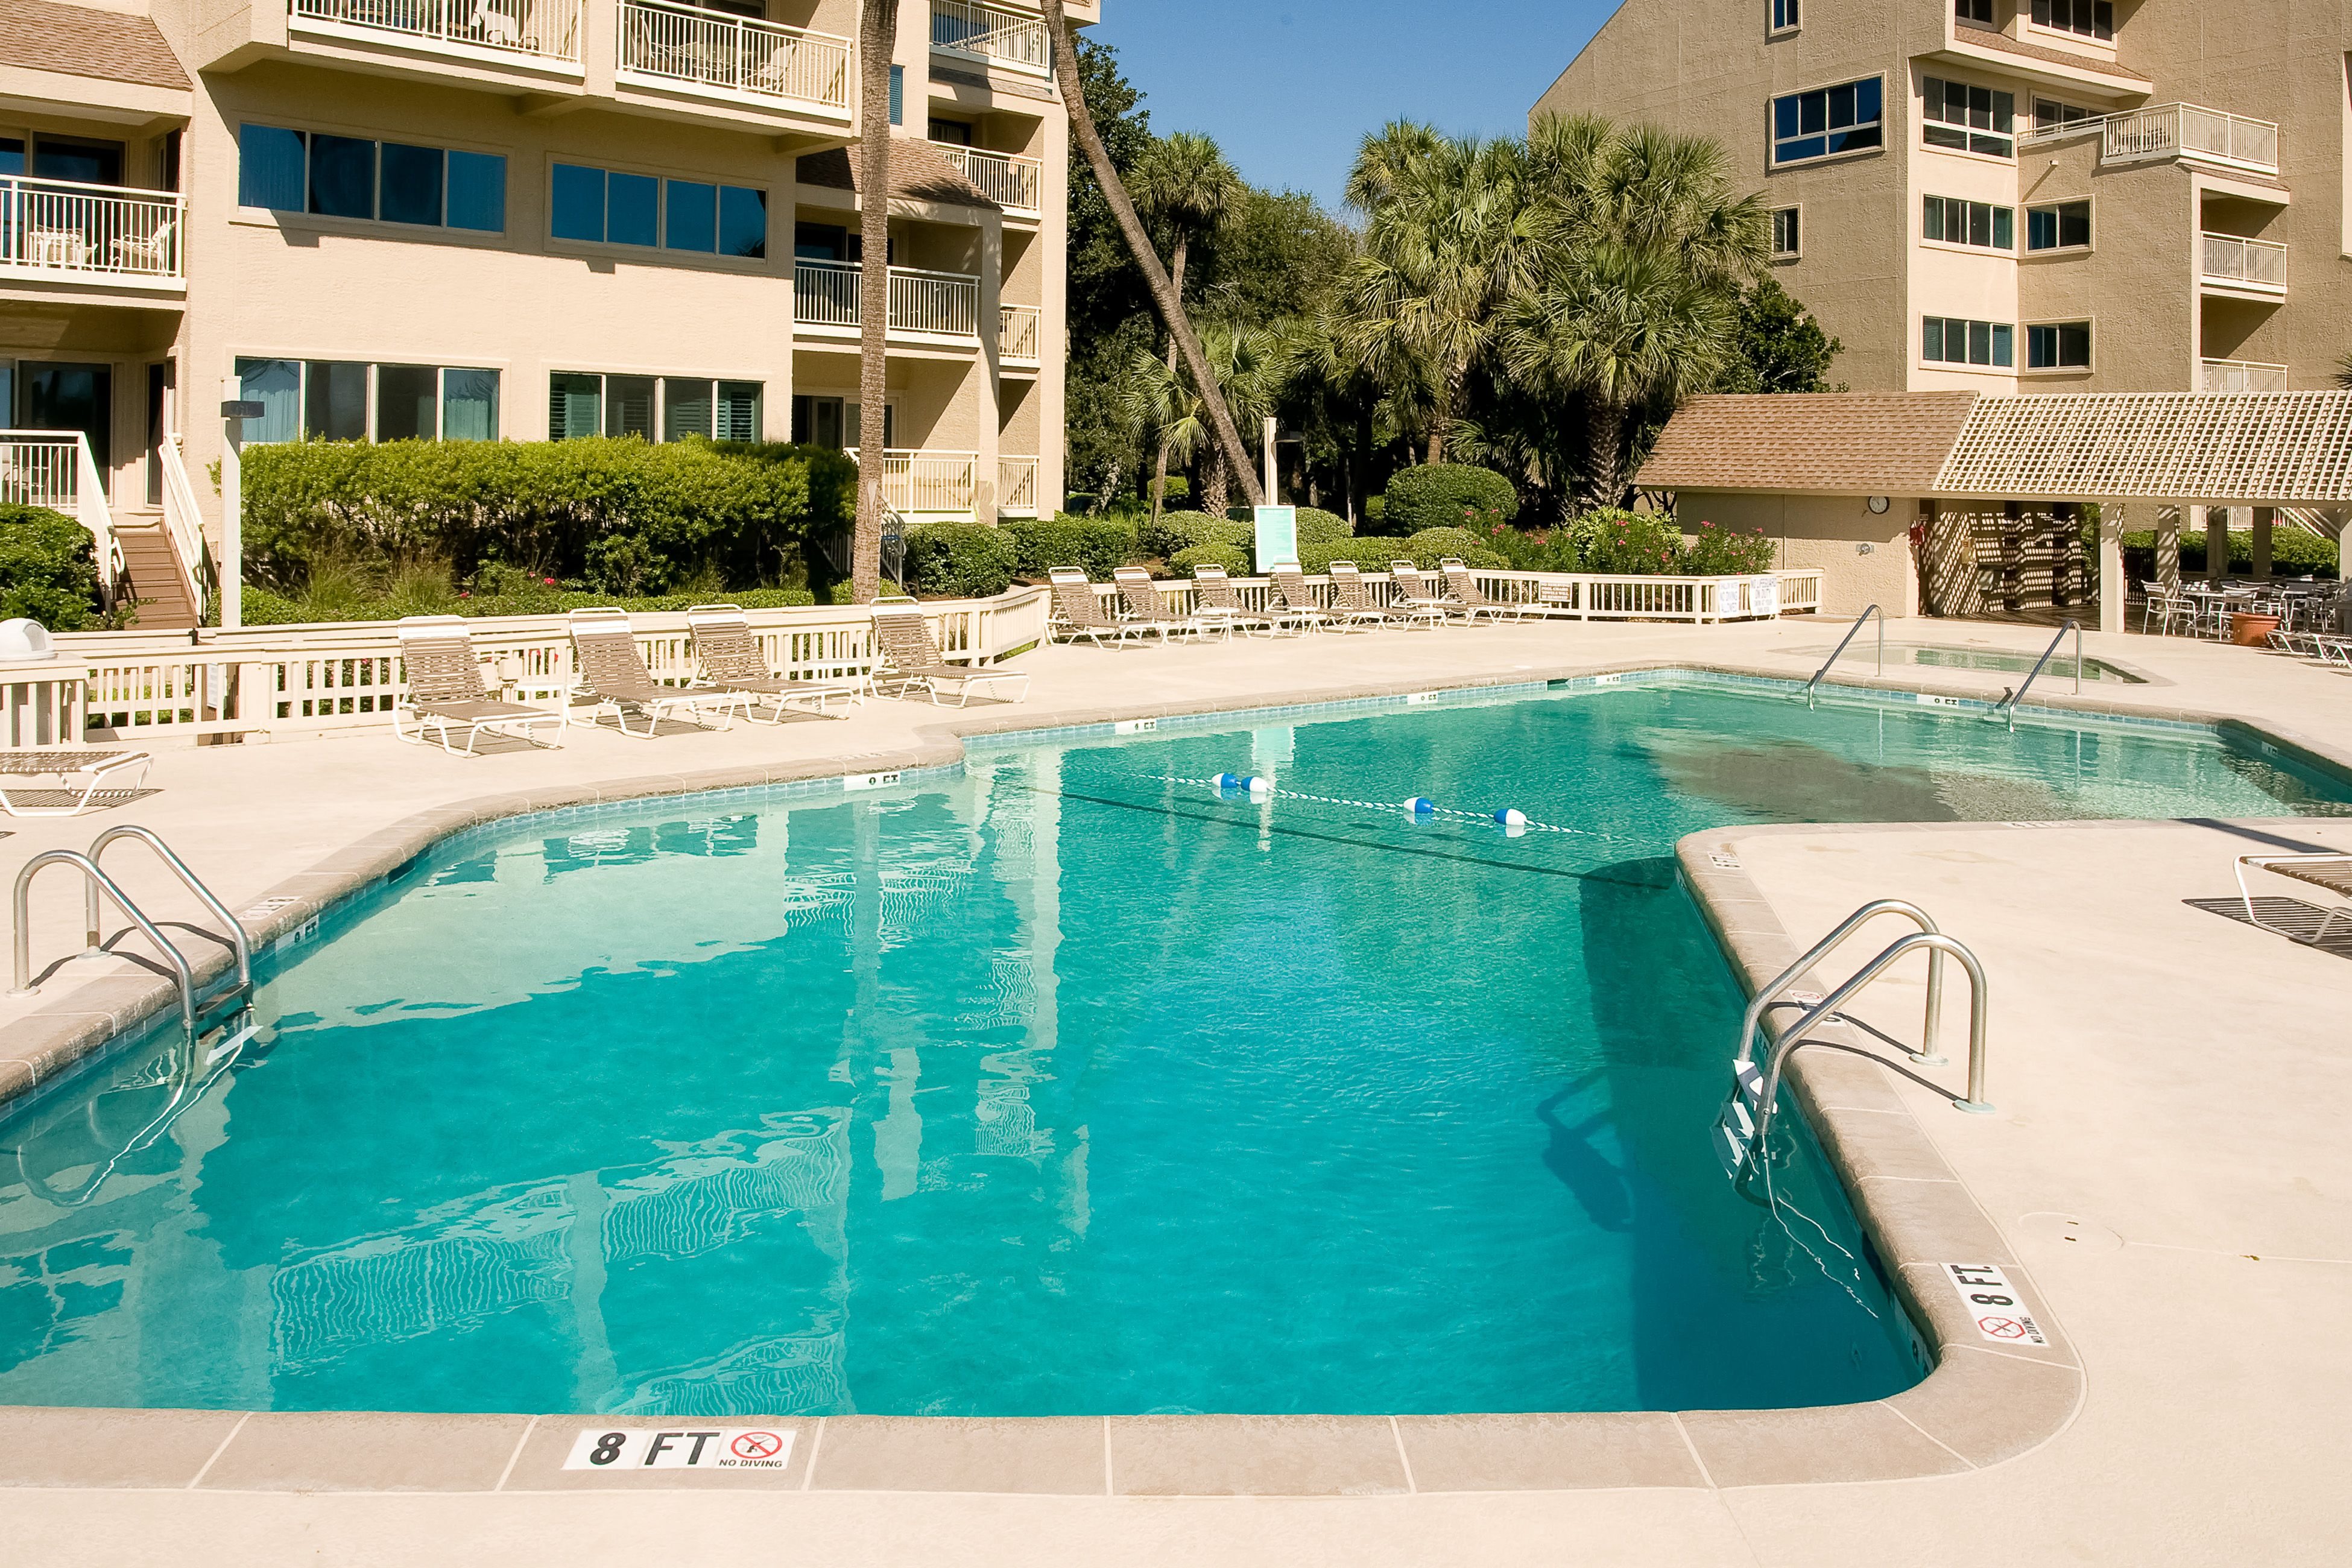 Captains cove 493 vacation rental in hilton headsc